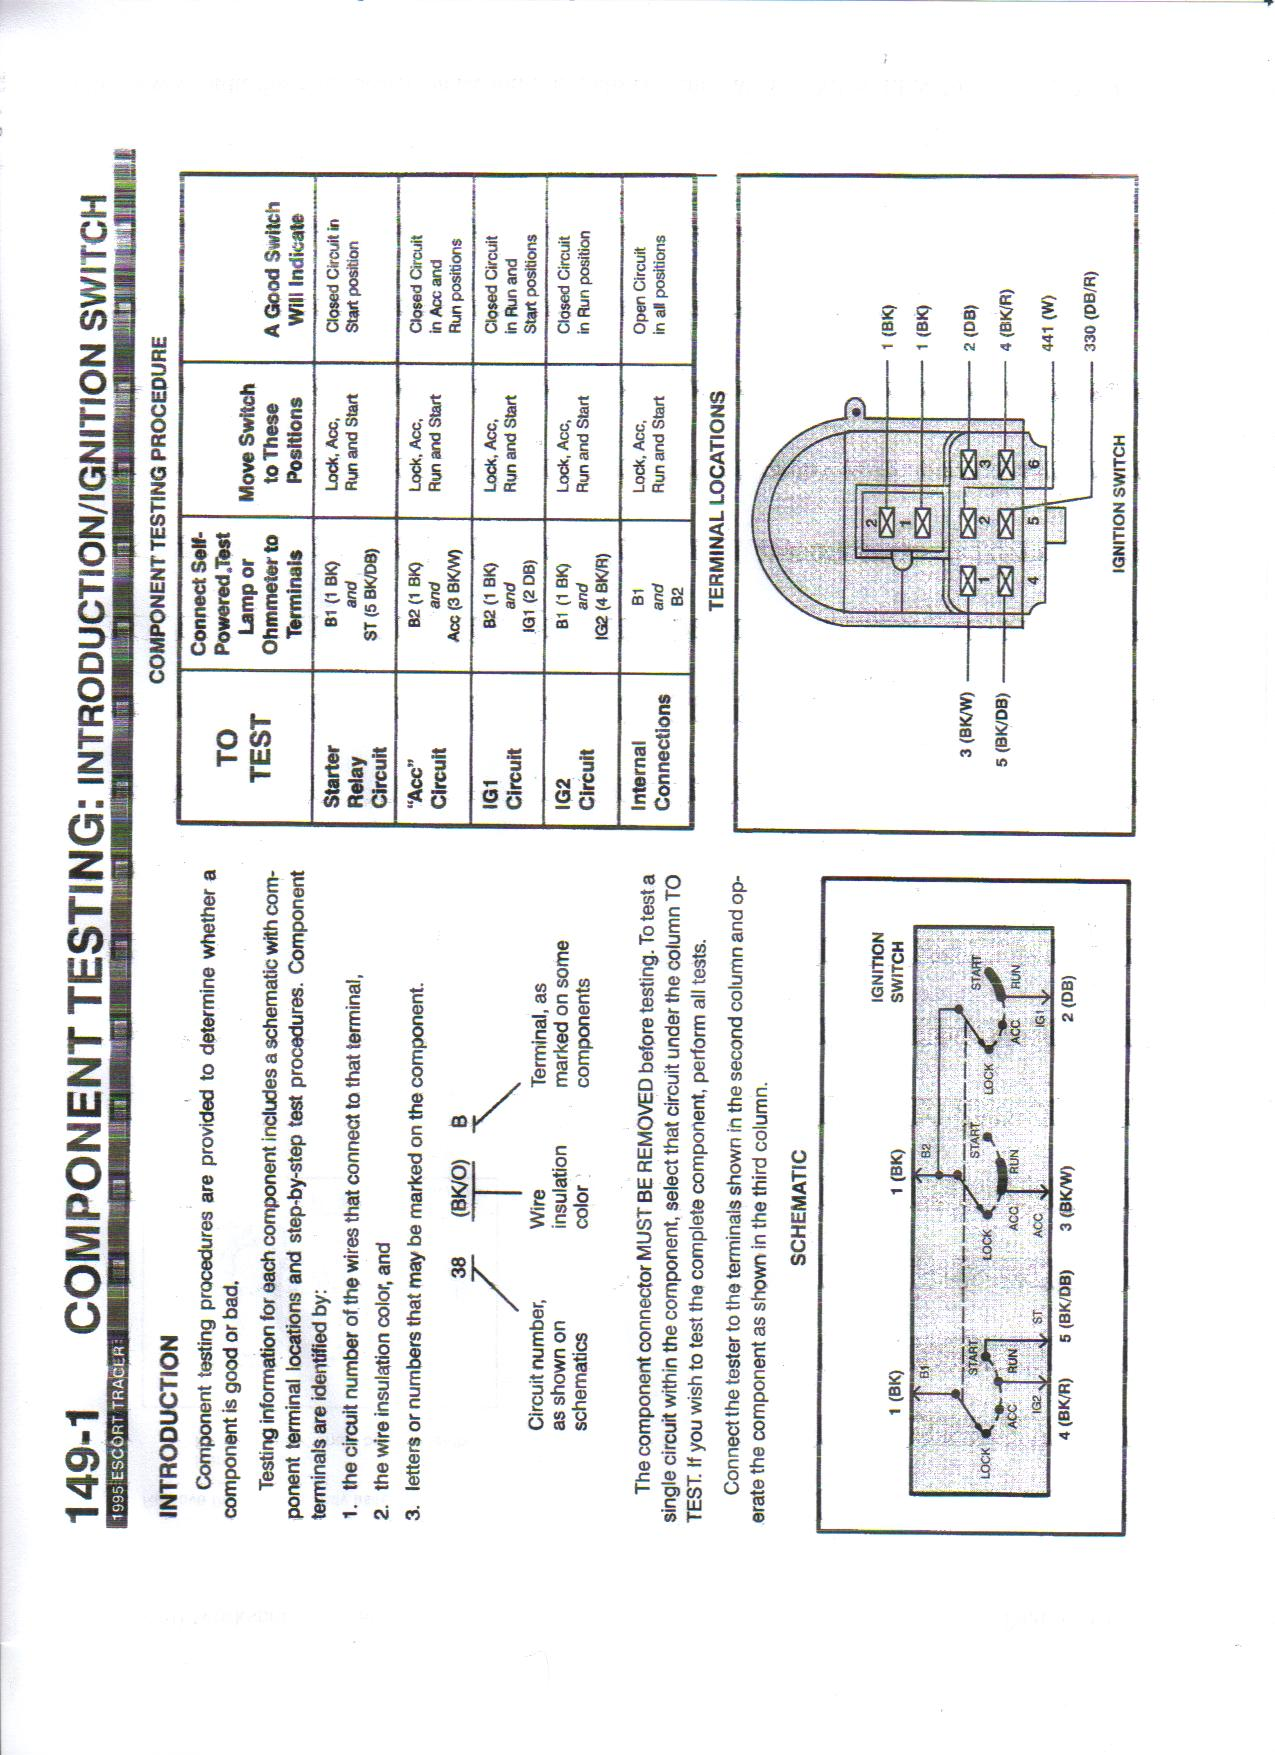 Wiring diagram ford escort heater blower chevy s